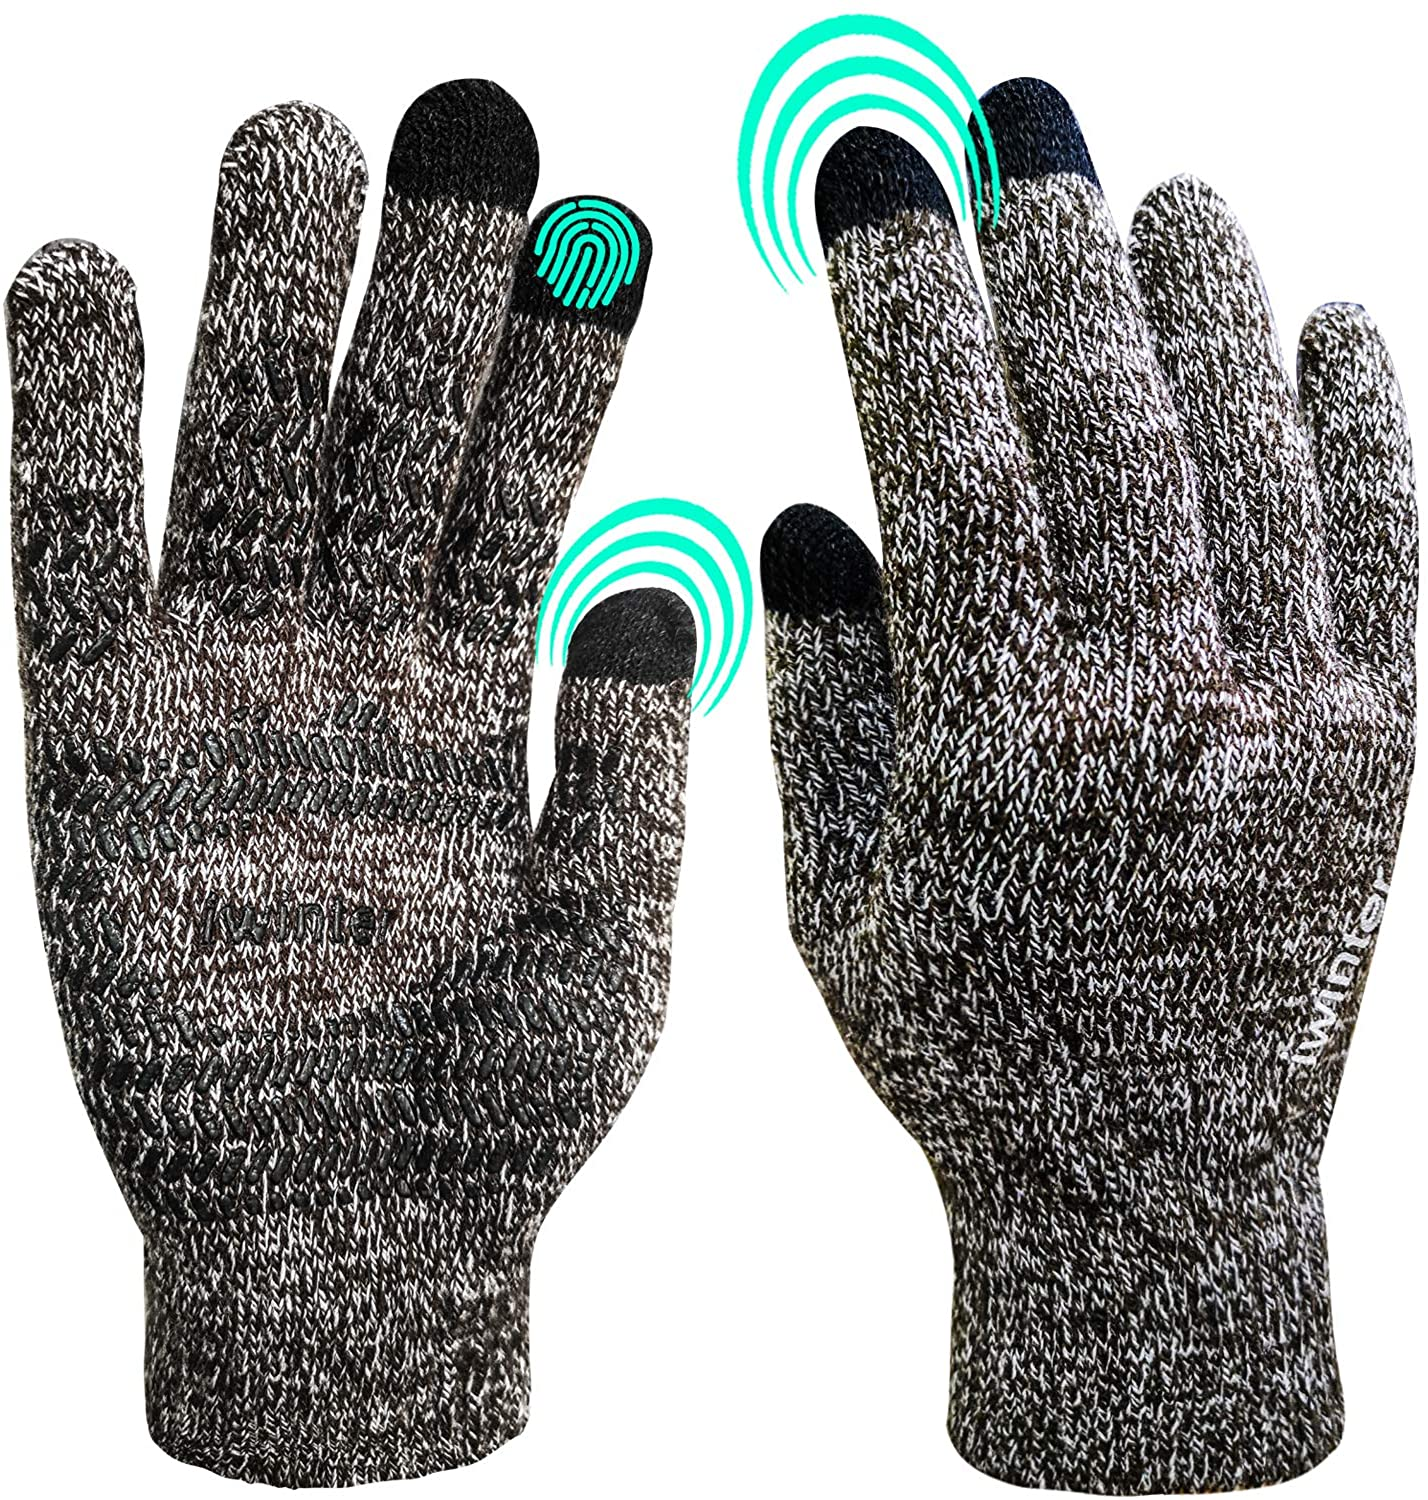 Winter Gloves for Women Men Knitted Touchscreen Gloves, Windproof, Thermal Soft Wool Lining